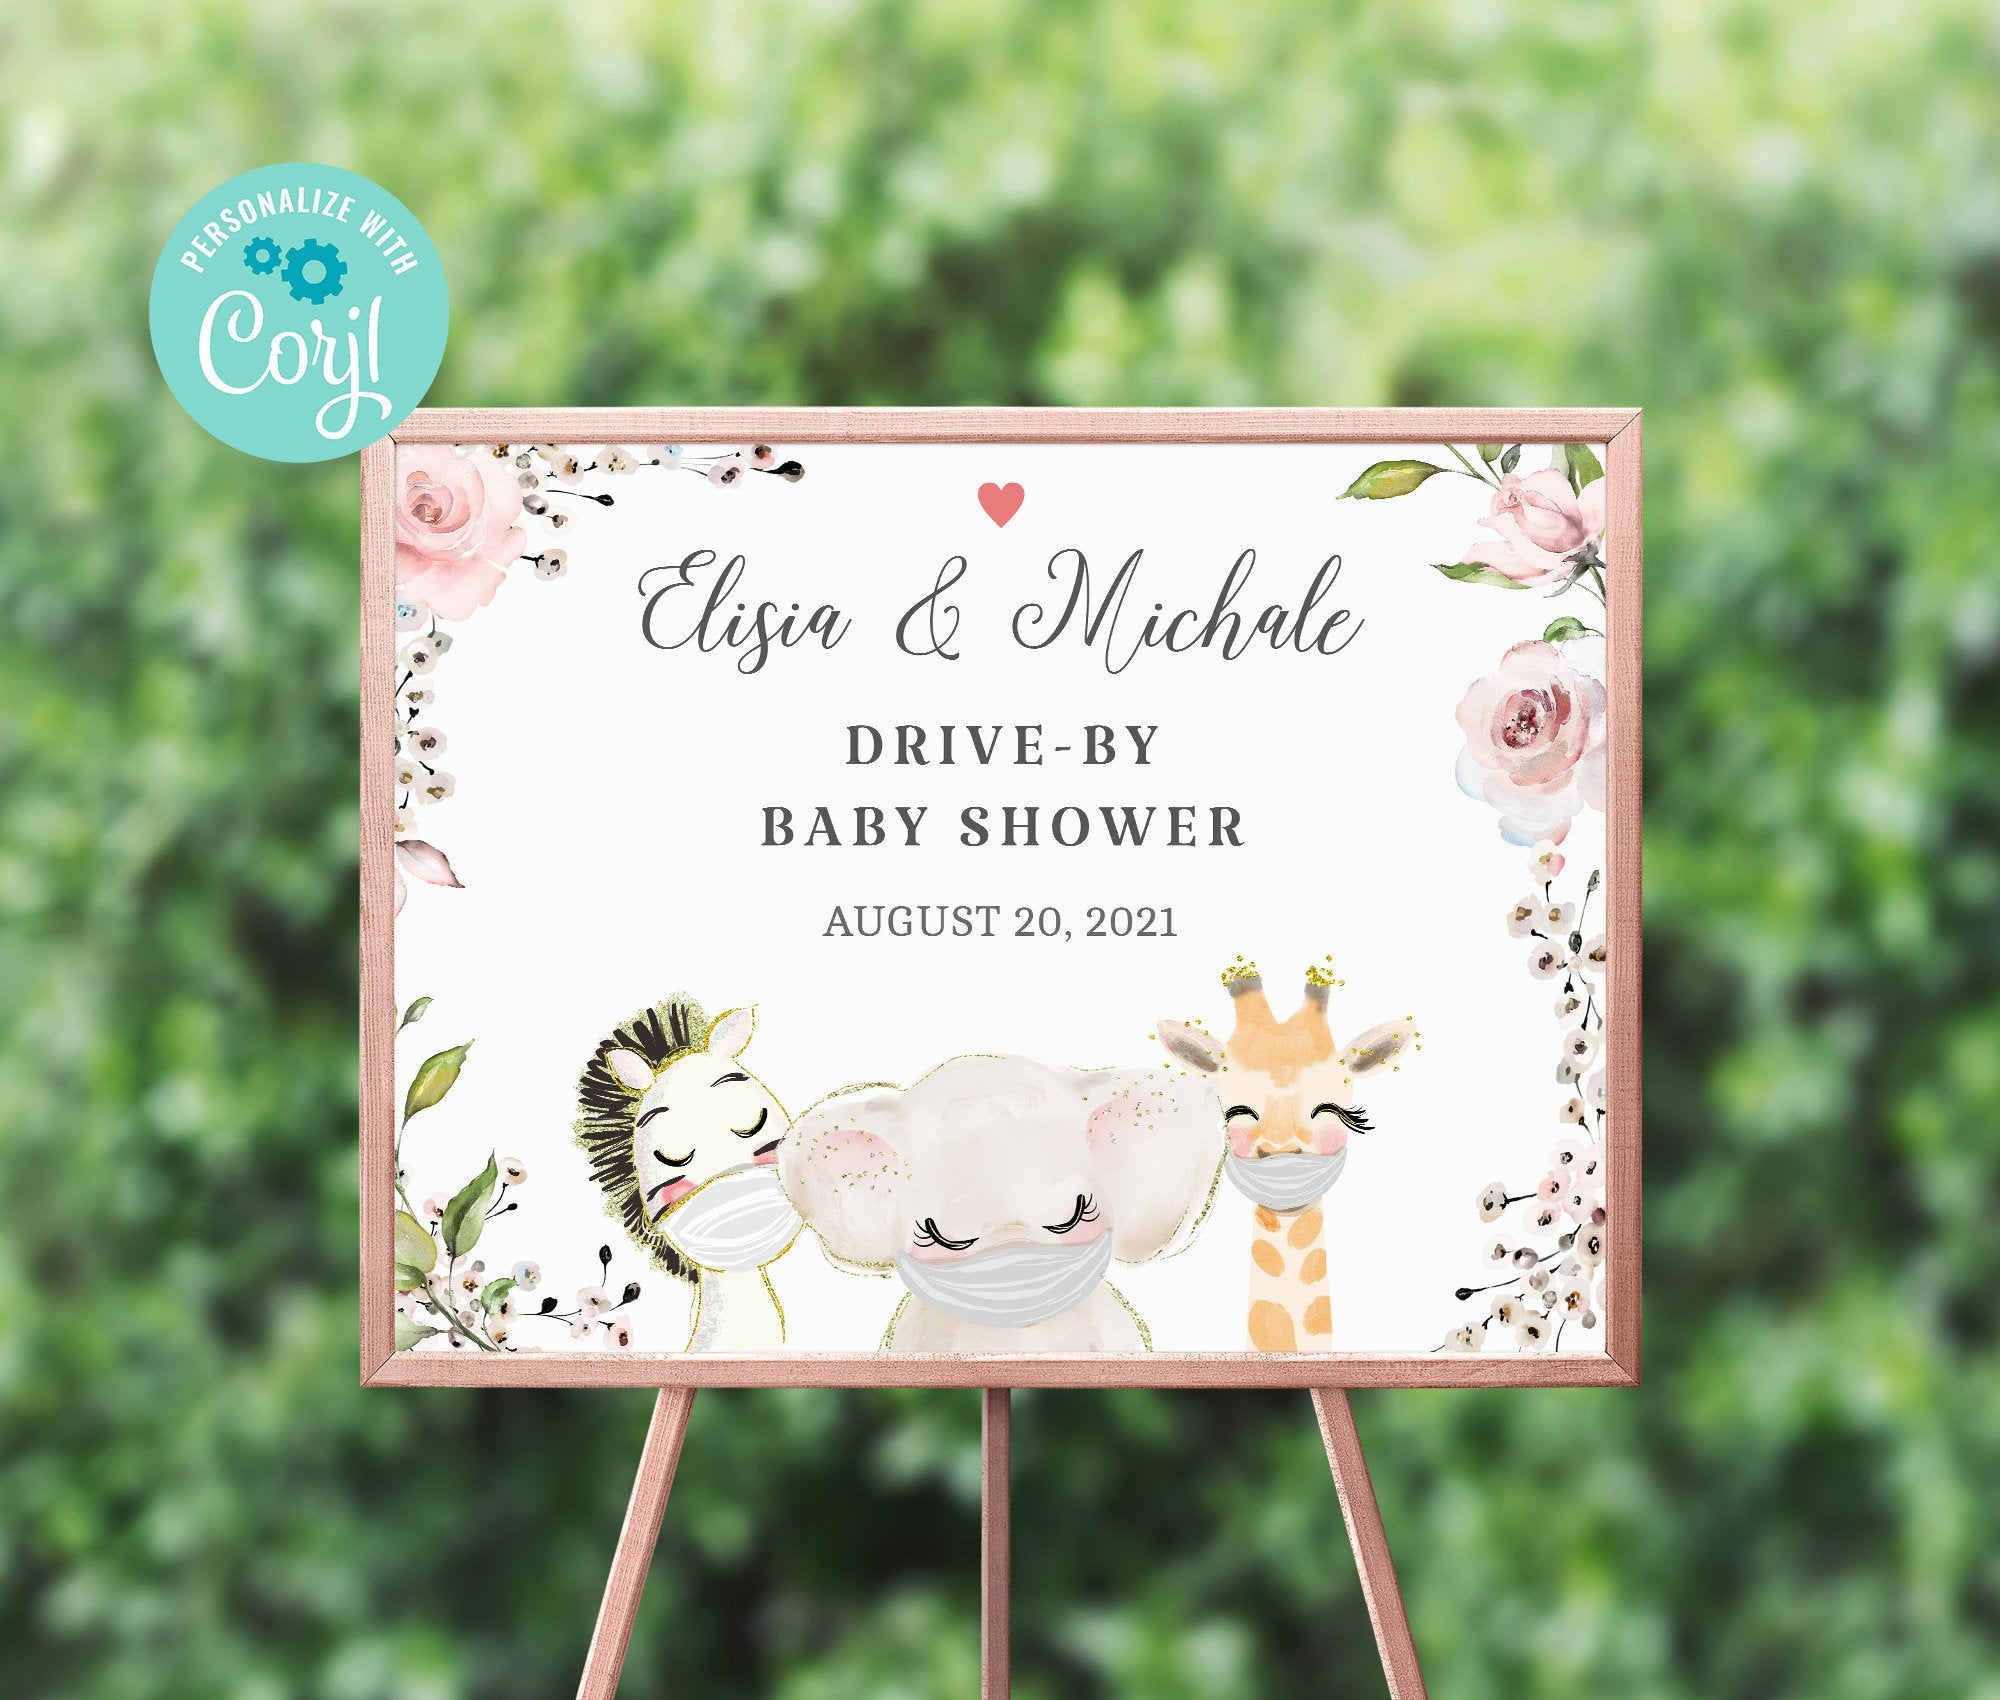 Drive By Baby Shower Welcome Sign Printable • Editable Sign • Quarantine Baby Animals • Social Distancing Party • Instant Download BS3601